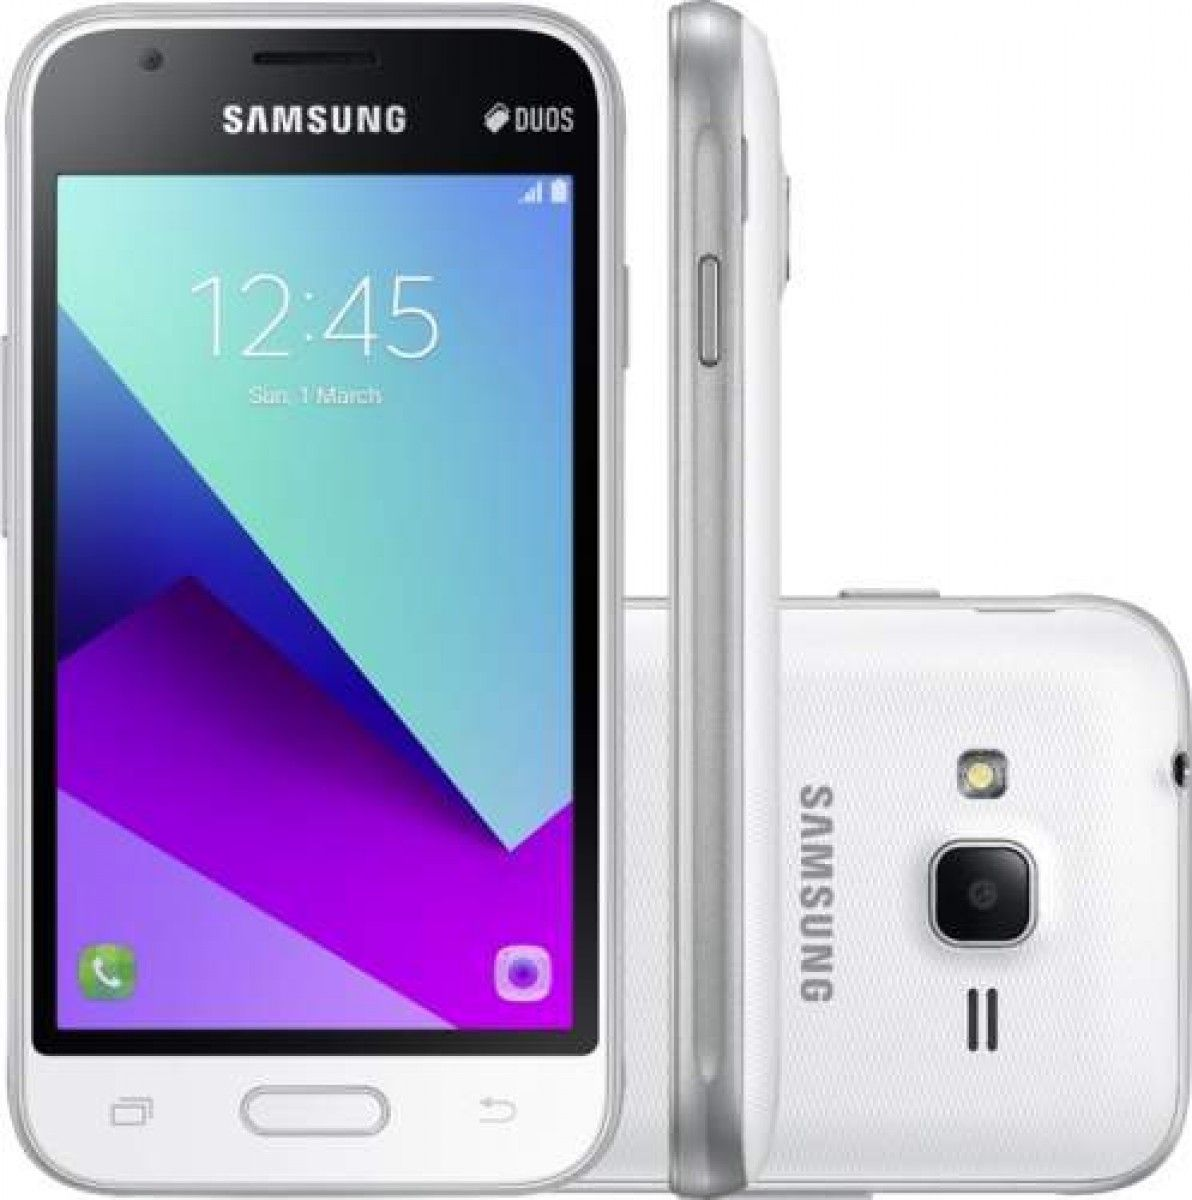 Samsung Launches The New Galaxy J1 Mini Prime In Pakistan Mobile And Gadgets Galaxy J1 Samsung Product Launch